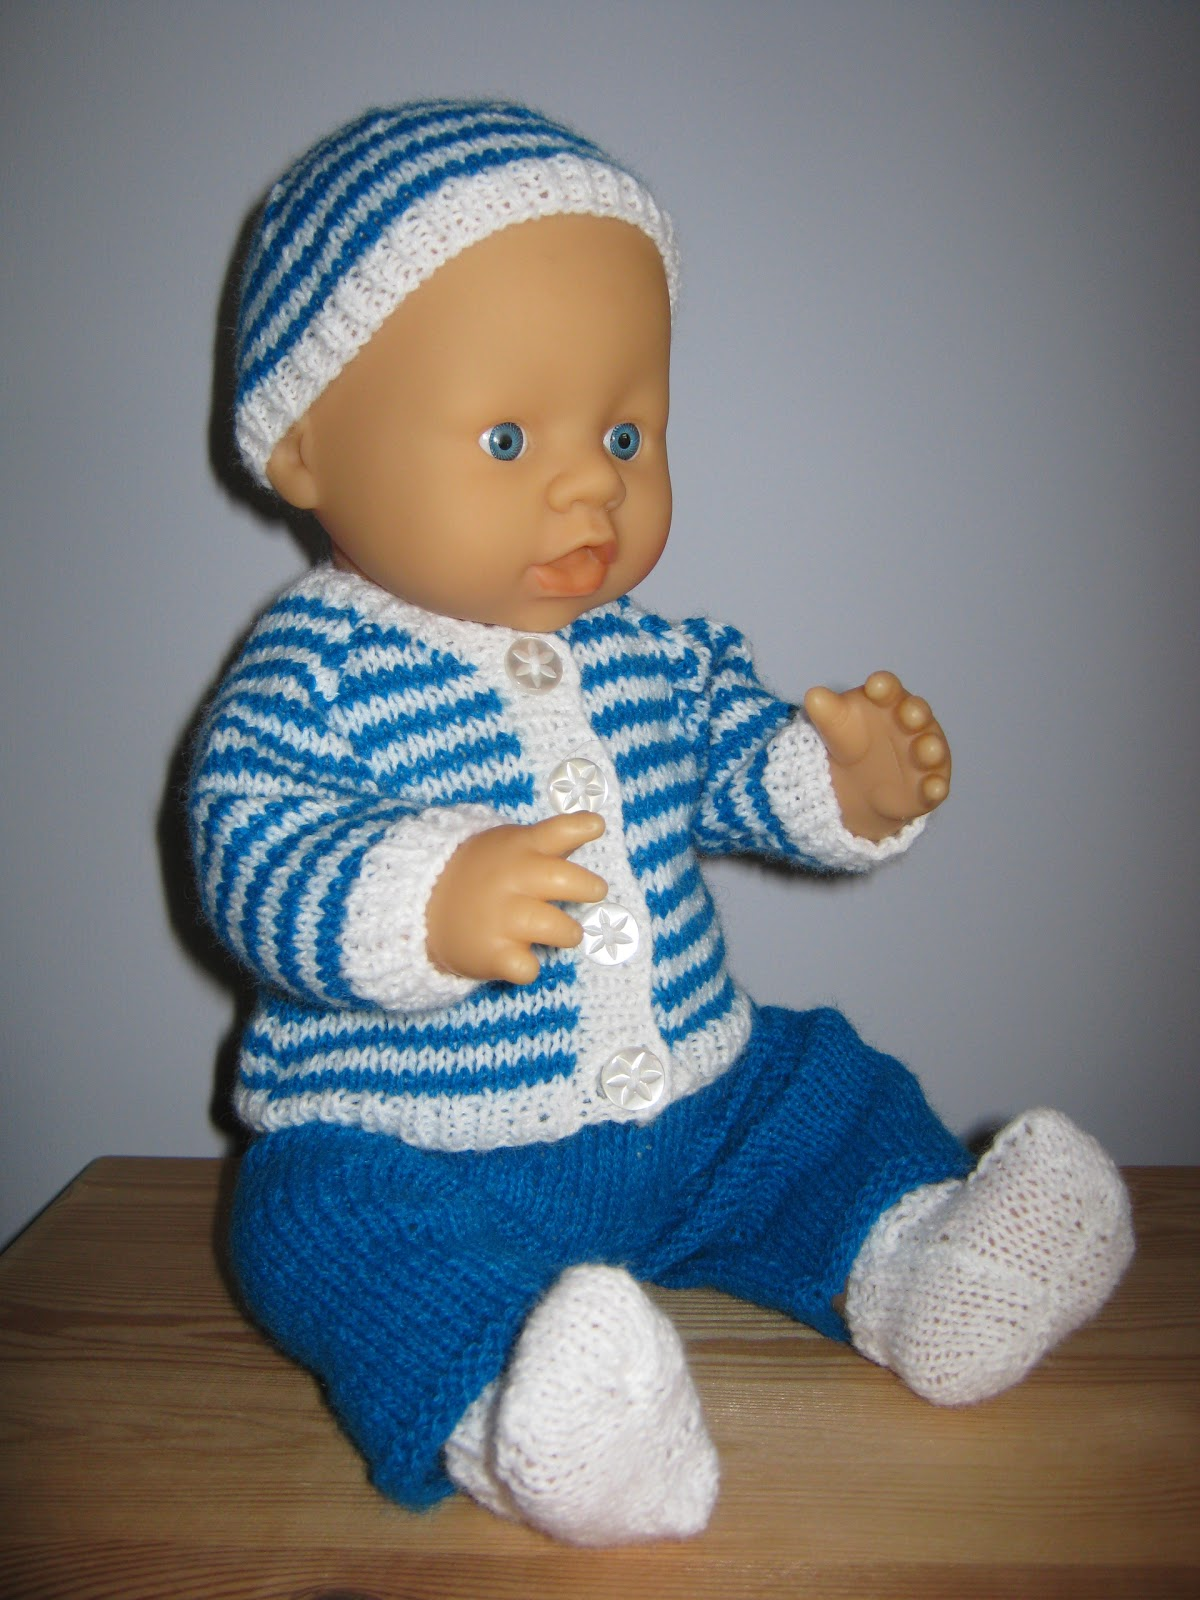 Free Knitting Patterns For 10 Inch Dolls Clothes : Sixties Spirit: Outfits for 16 inch baby doll - part 2